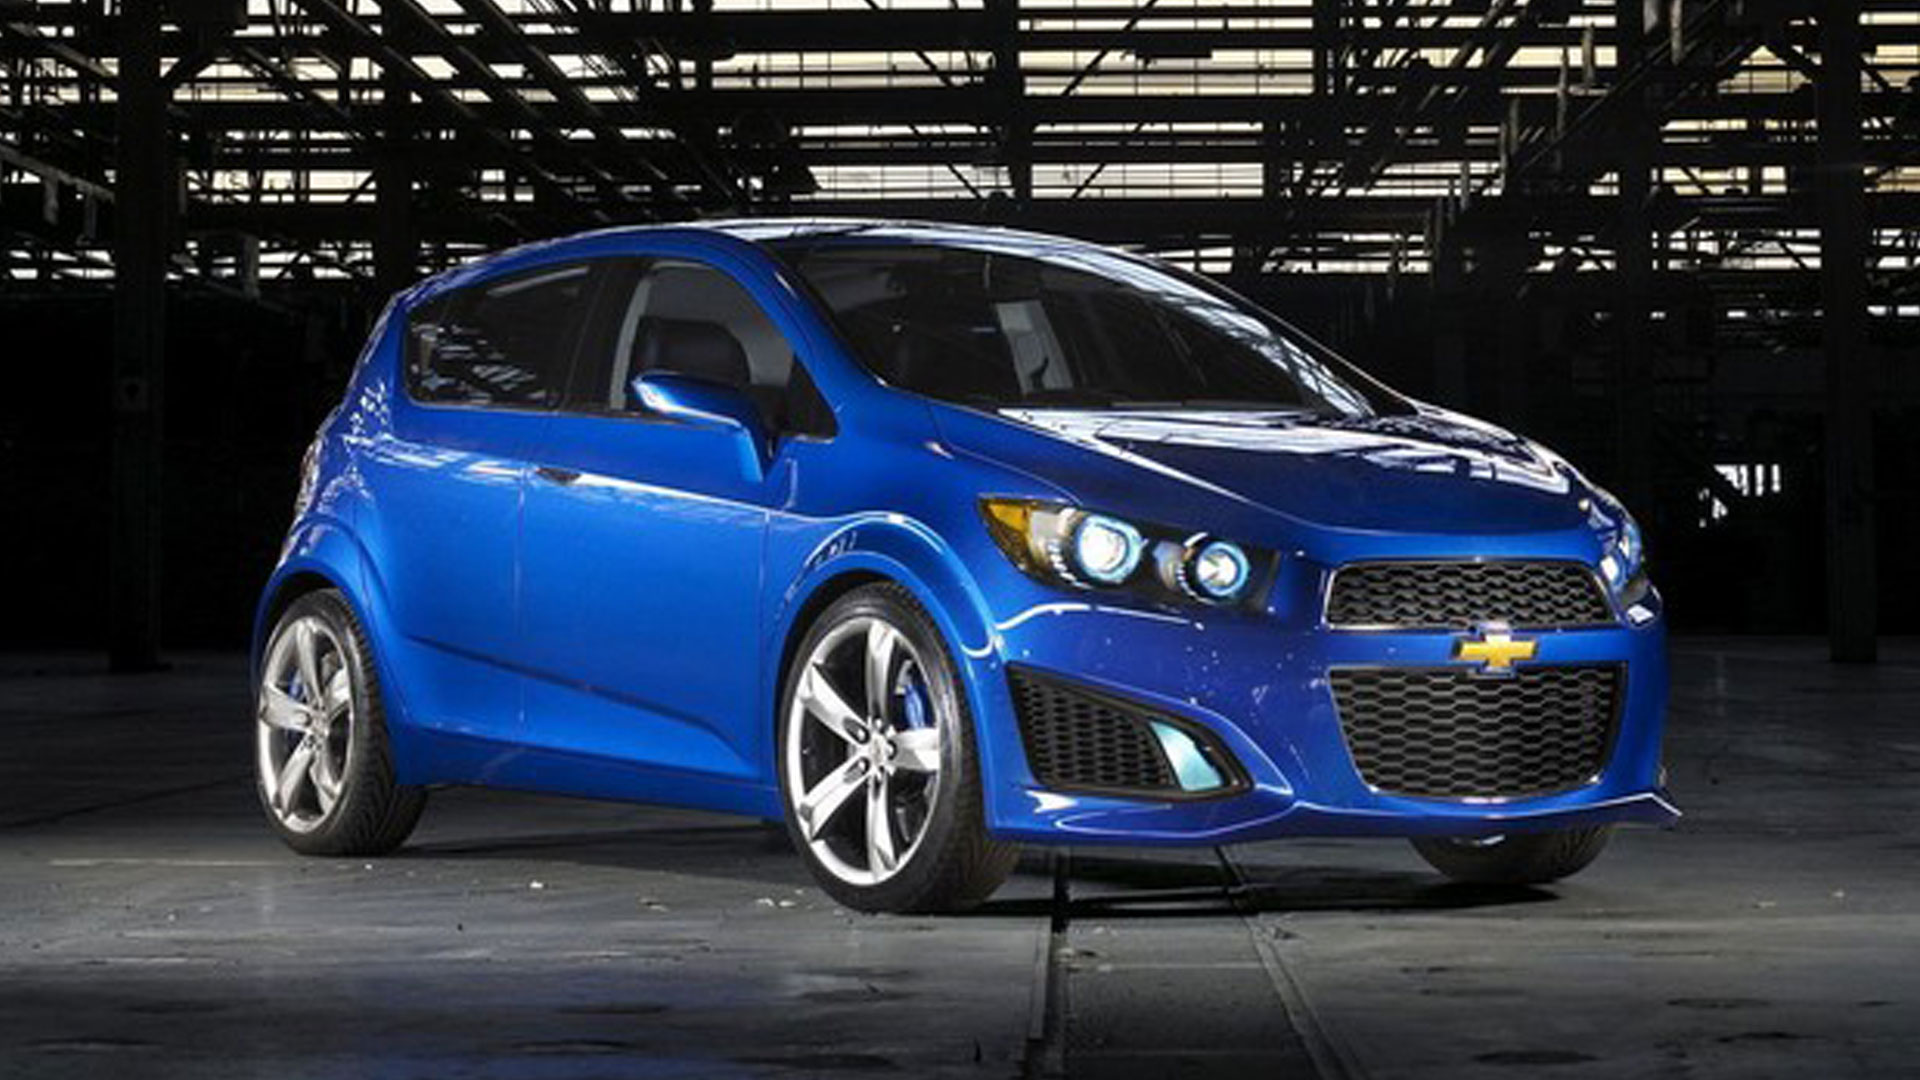 2013 Chevrolet Sonic RS Heels on Wheels Review